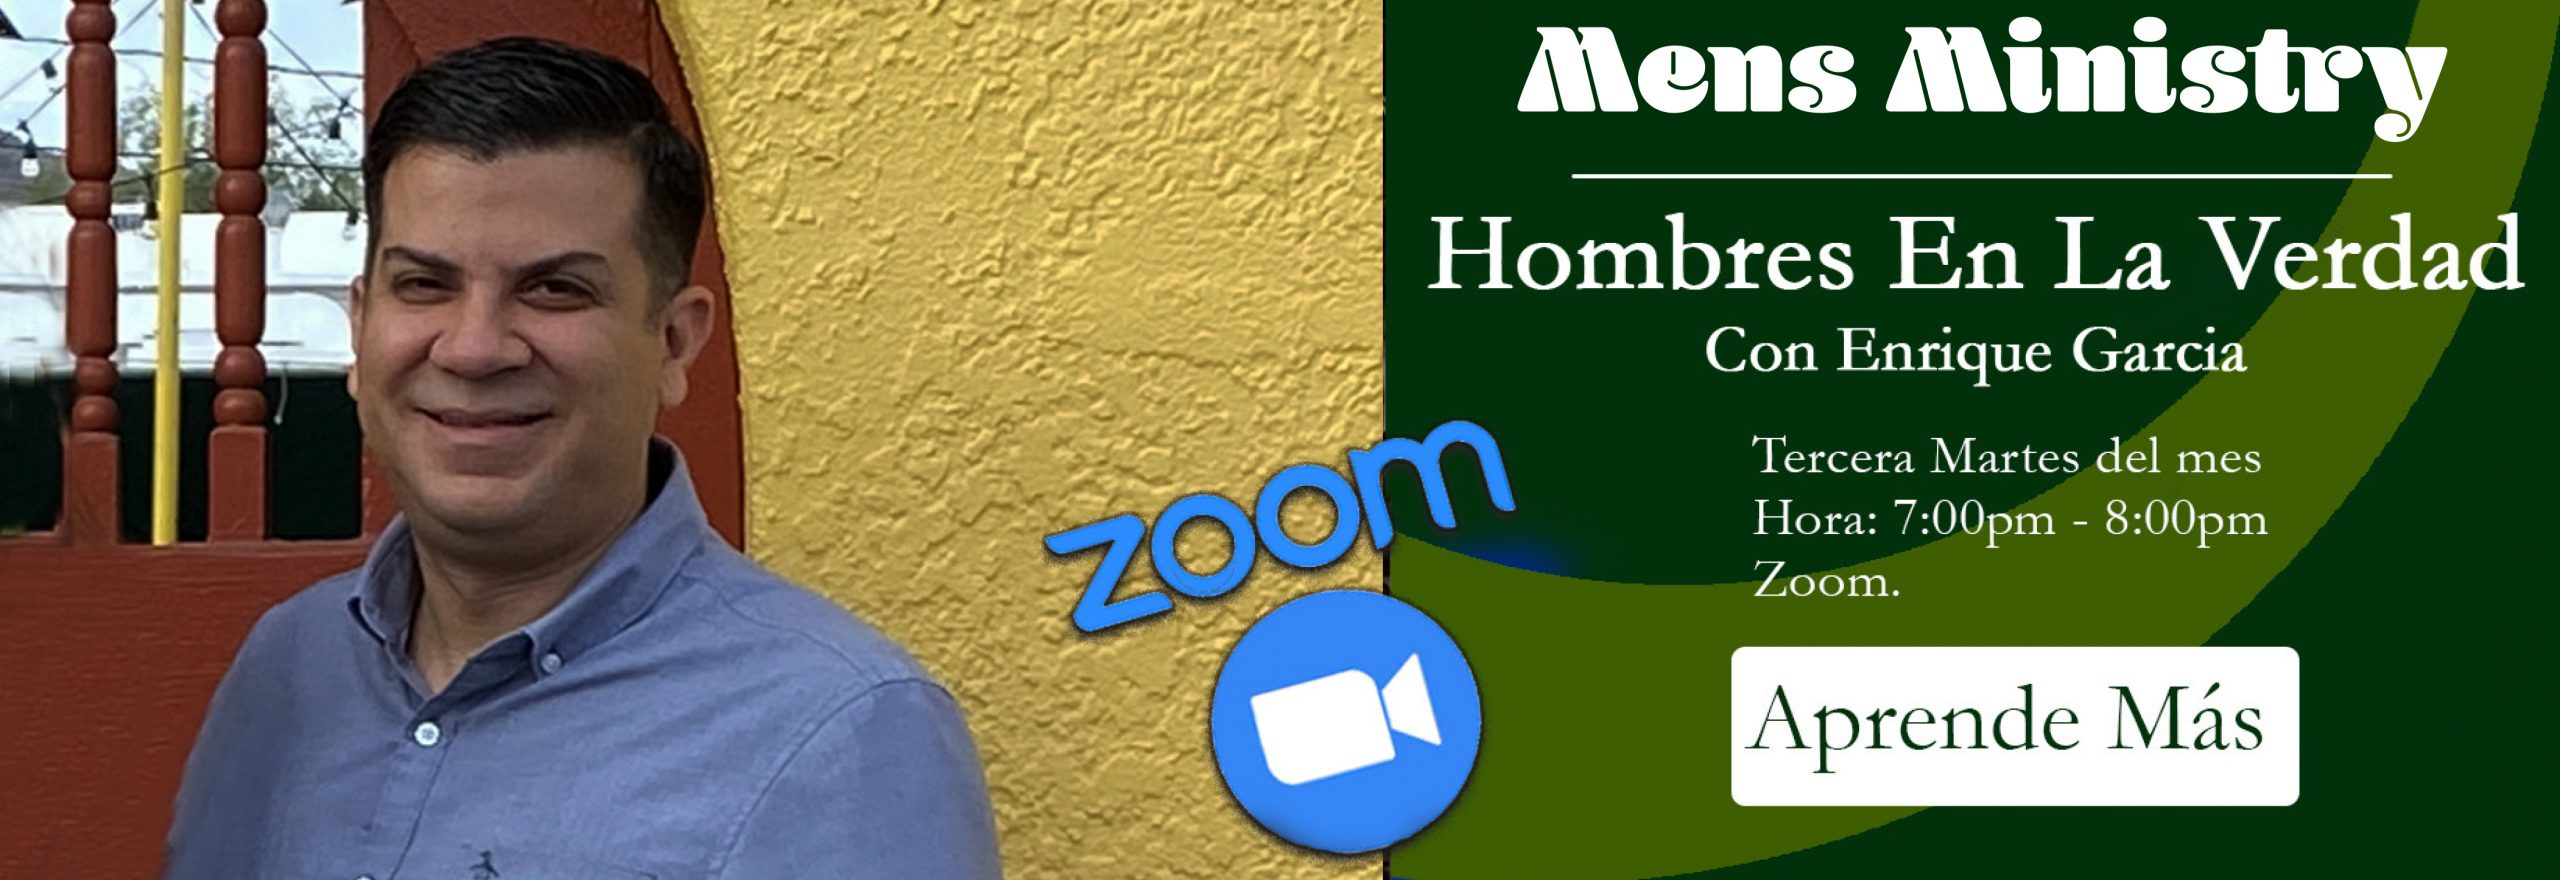 mens-ministry-Hombres-2021-1-scaled